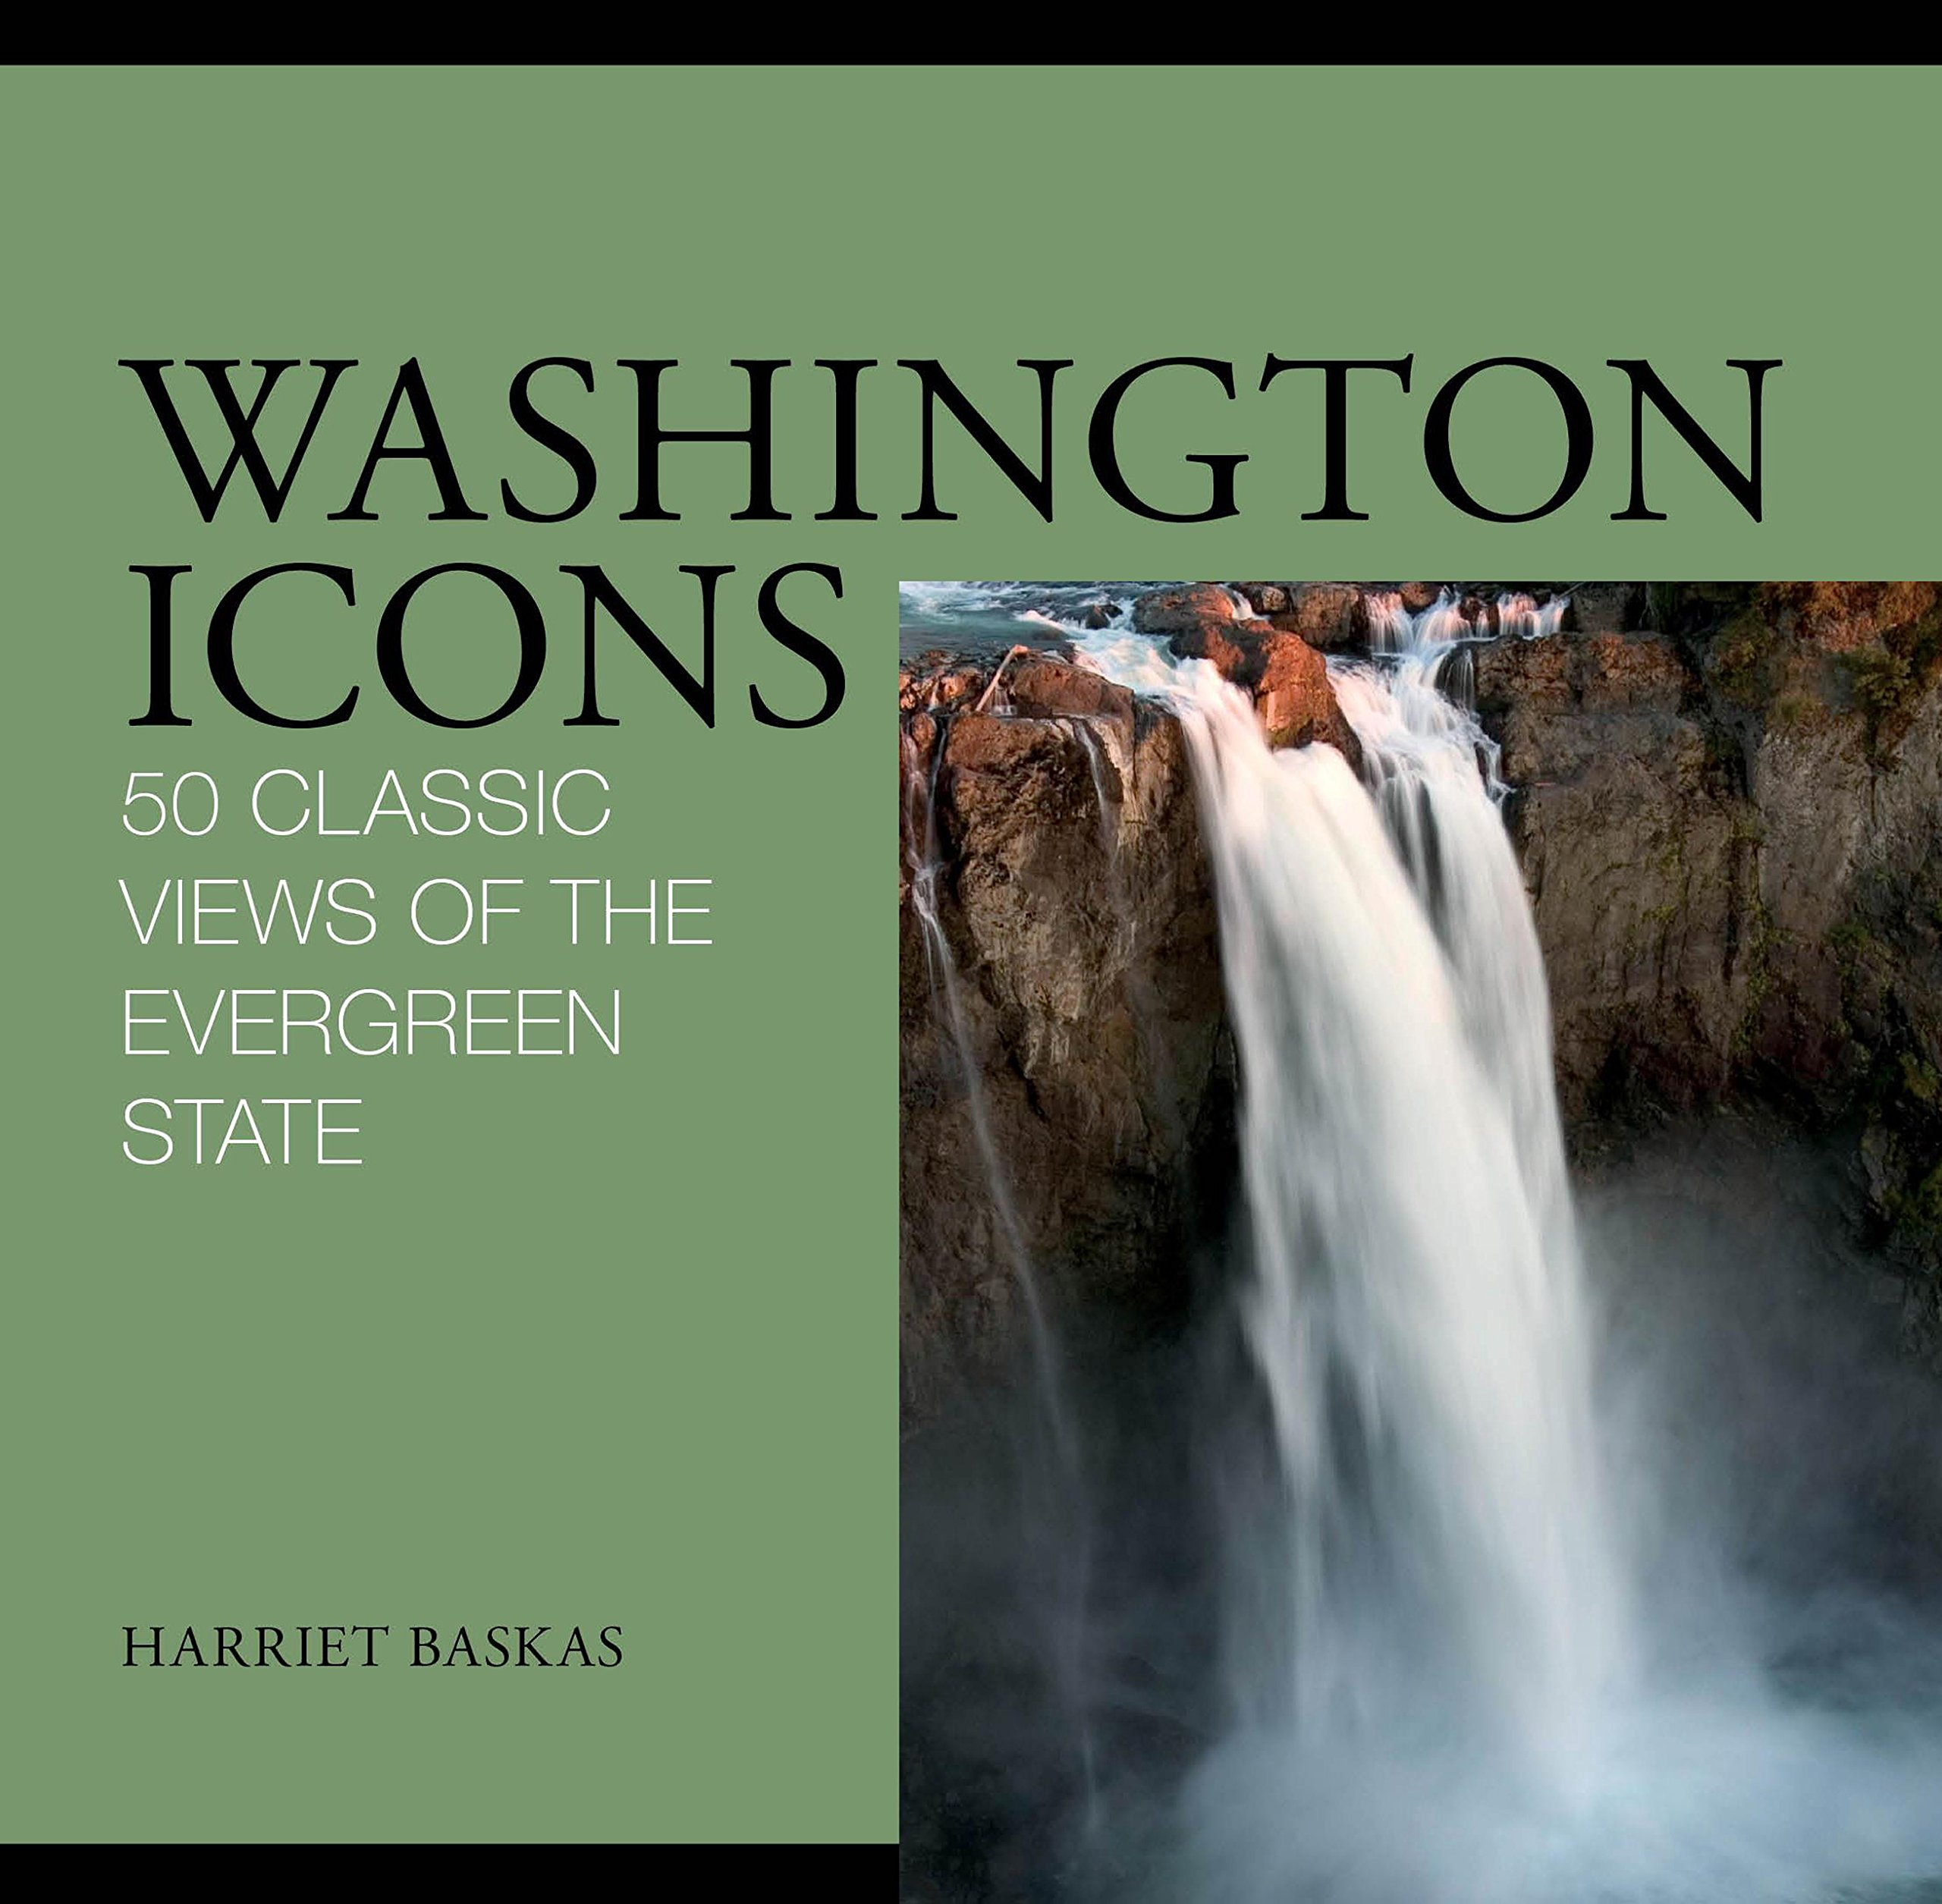 Washington Icons: 50 Classic Views of the Evergreen State pdf